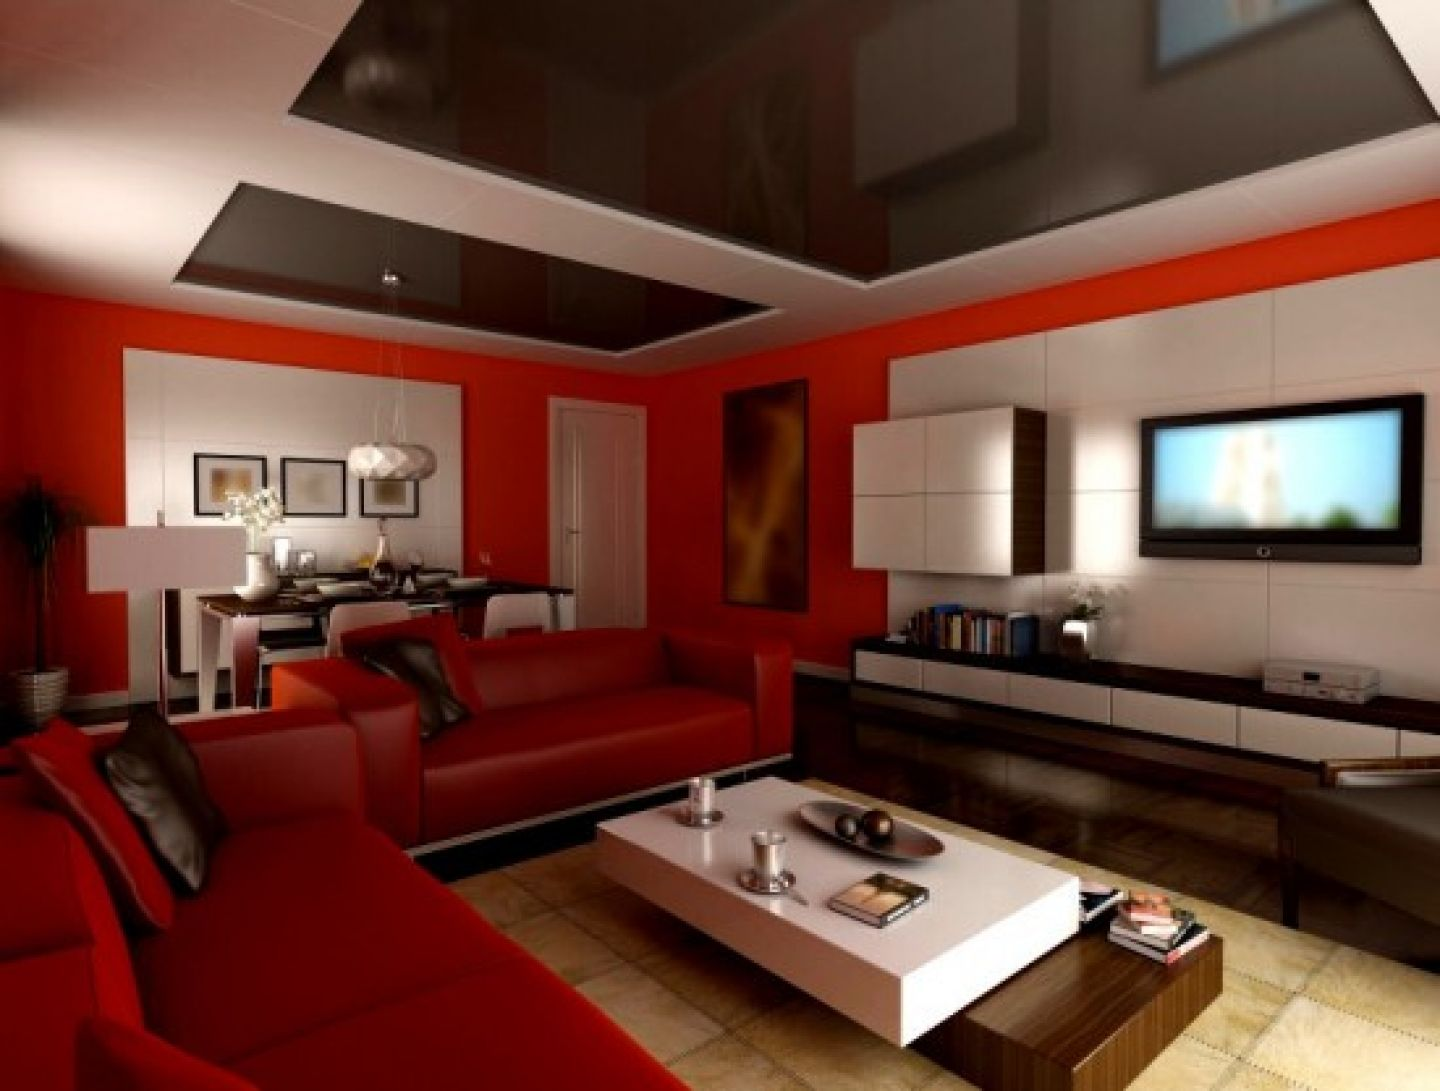 Design living room paint colors ideas modern red white living room with red sectional sofa and